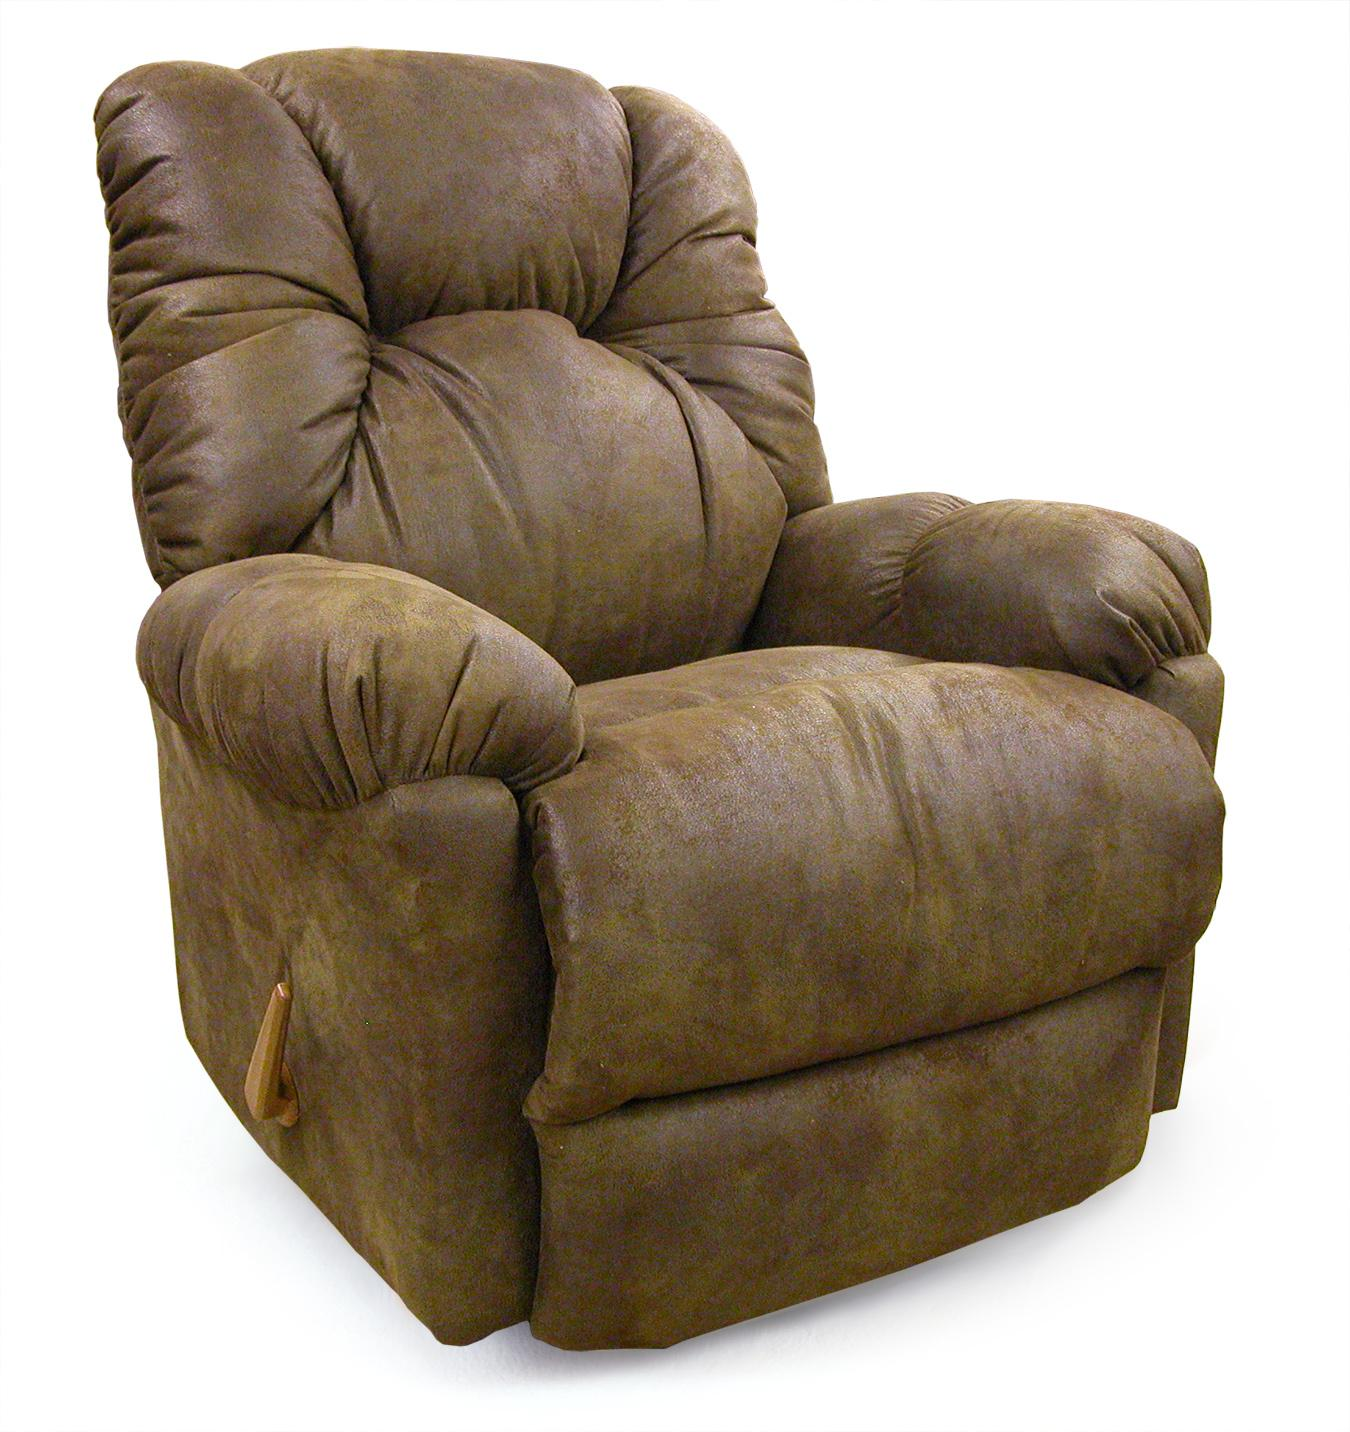 Best Home Furnishings Recliners - Medium Romulus Wallhugger Recliner - Item Number: 9MW54